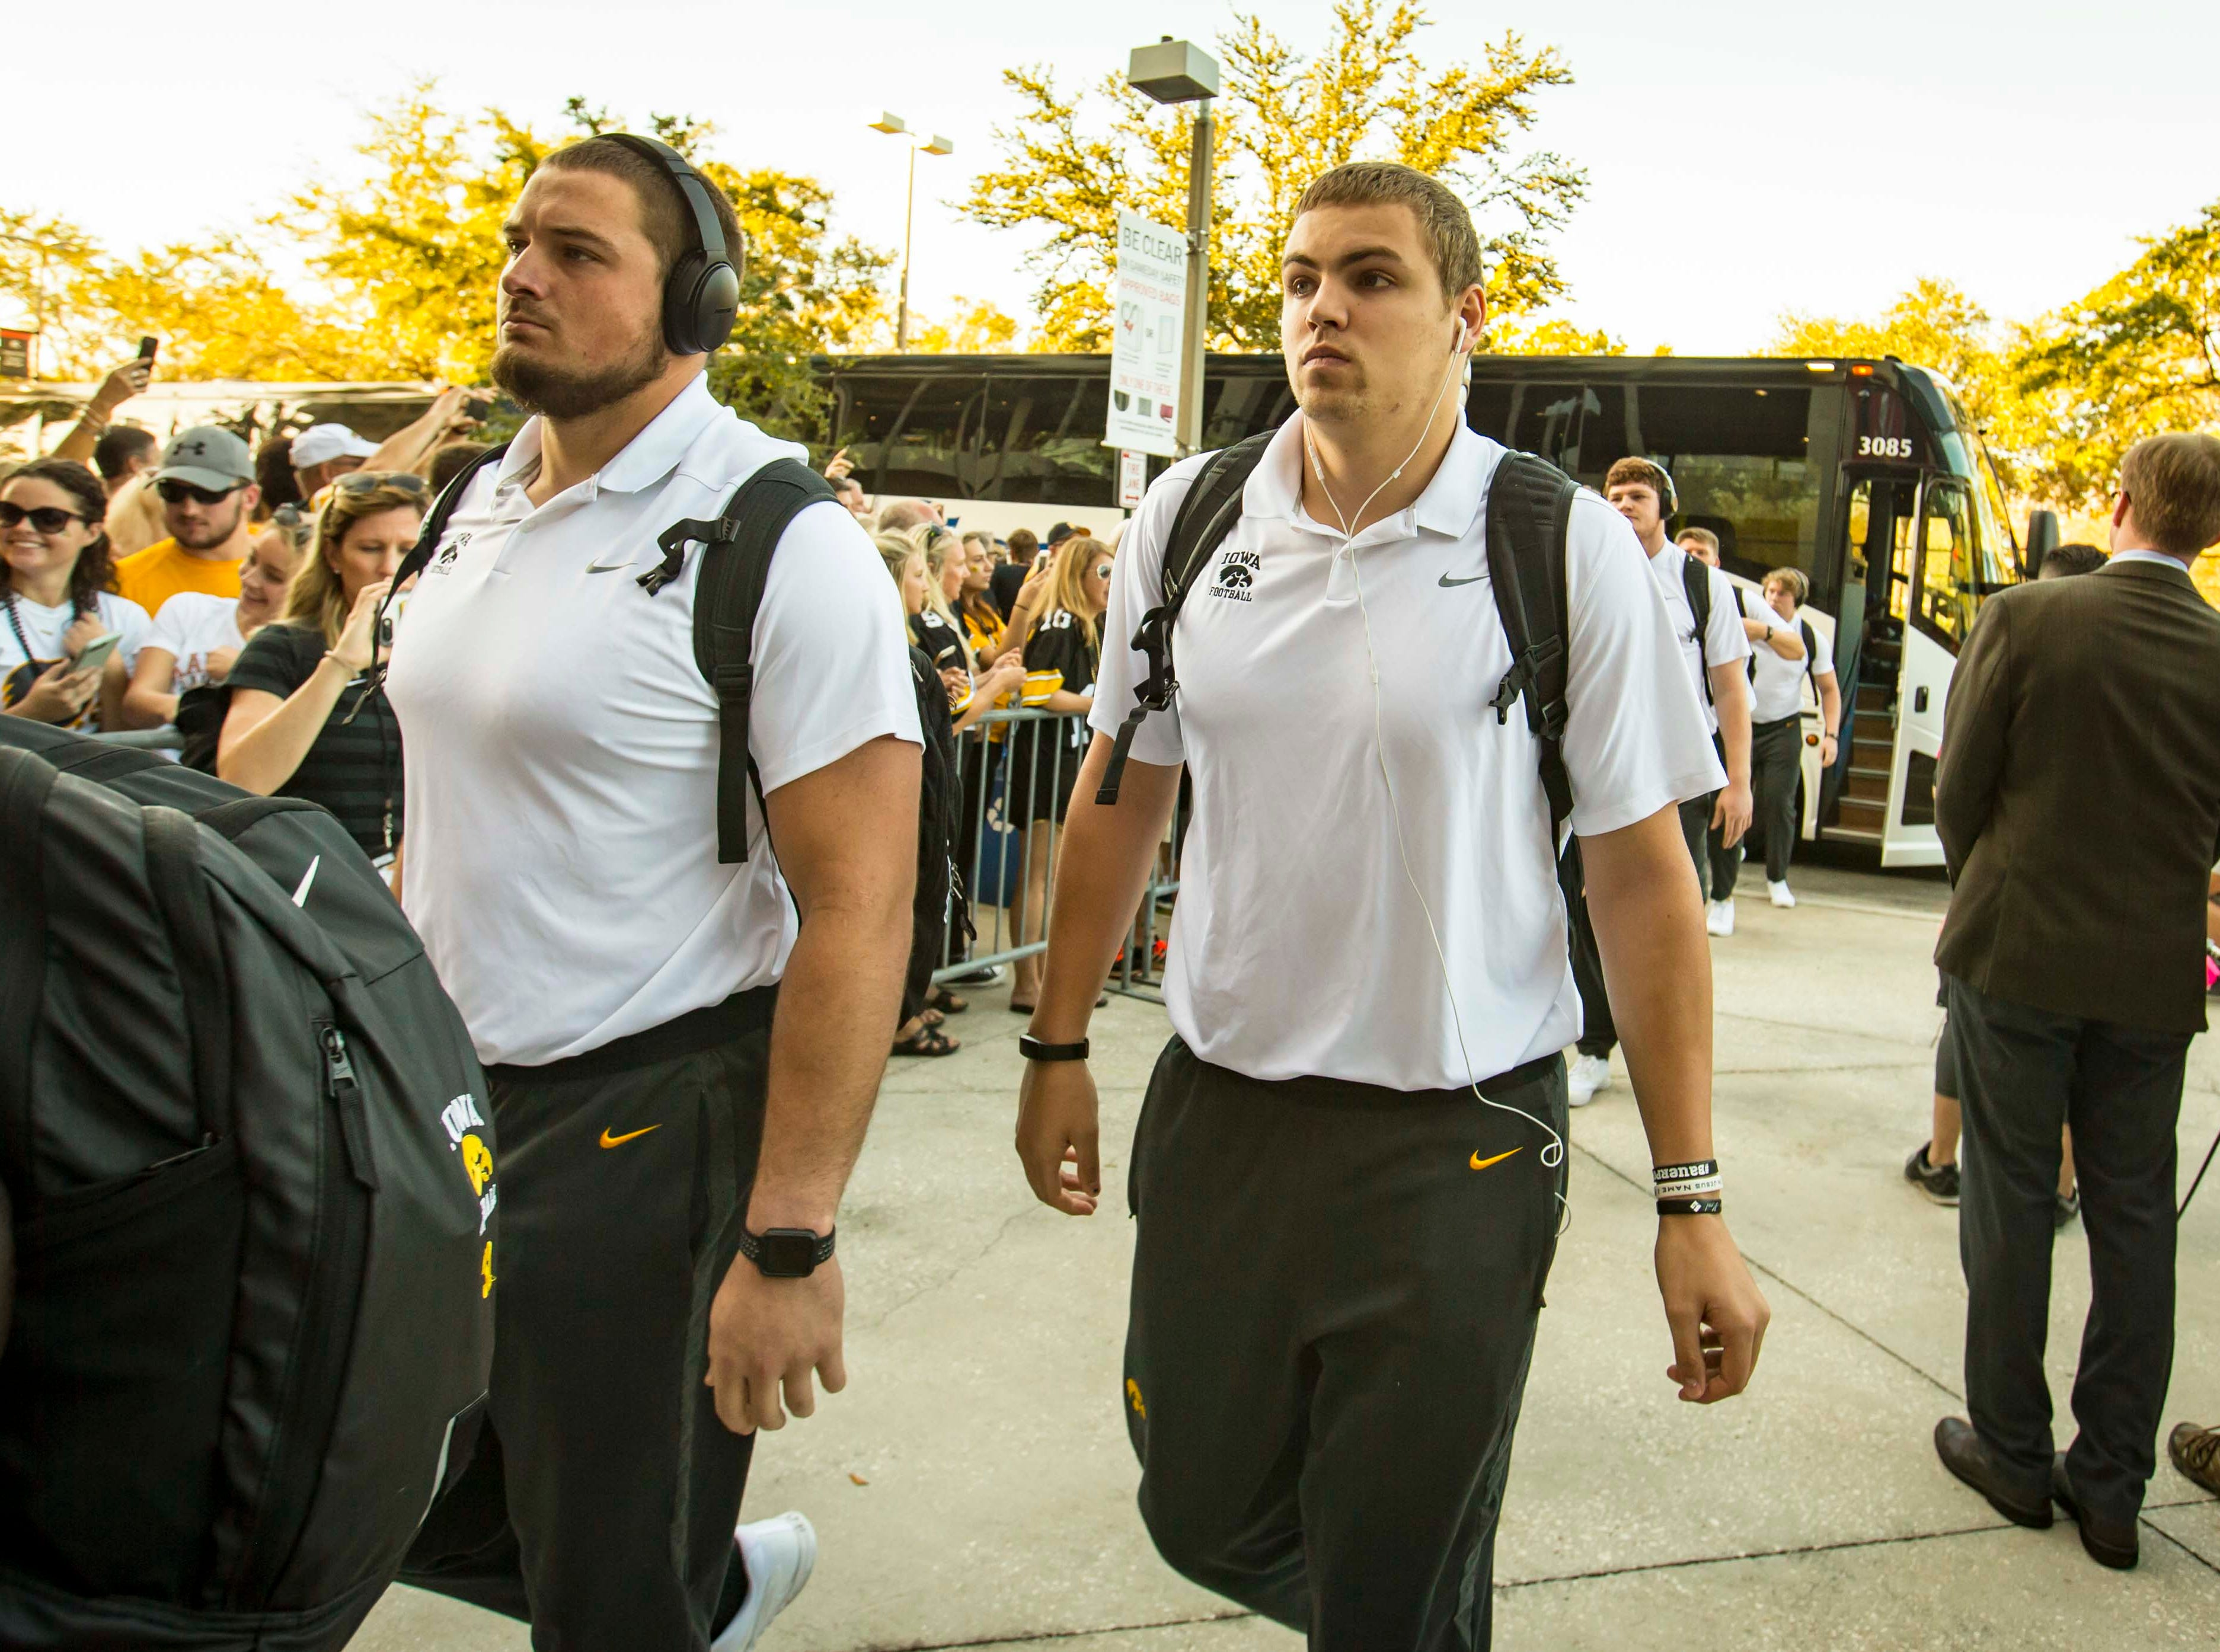 Iowa quarterback Nate Stanley arrives with the Iowa football team at Raymond James Stadium Jan. 1, 2019 in Tampa, Florida. Iowa takes on Mississippi State in the Outback Bowl.